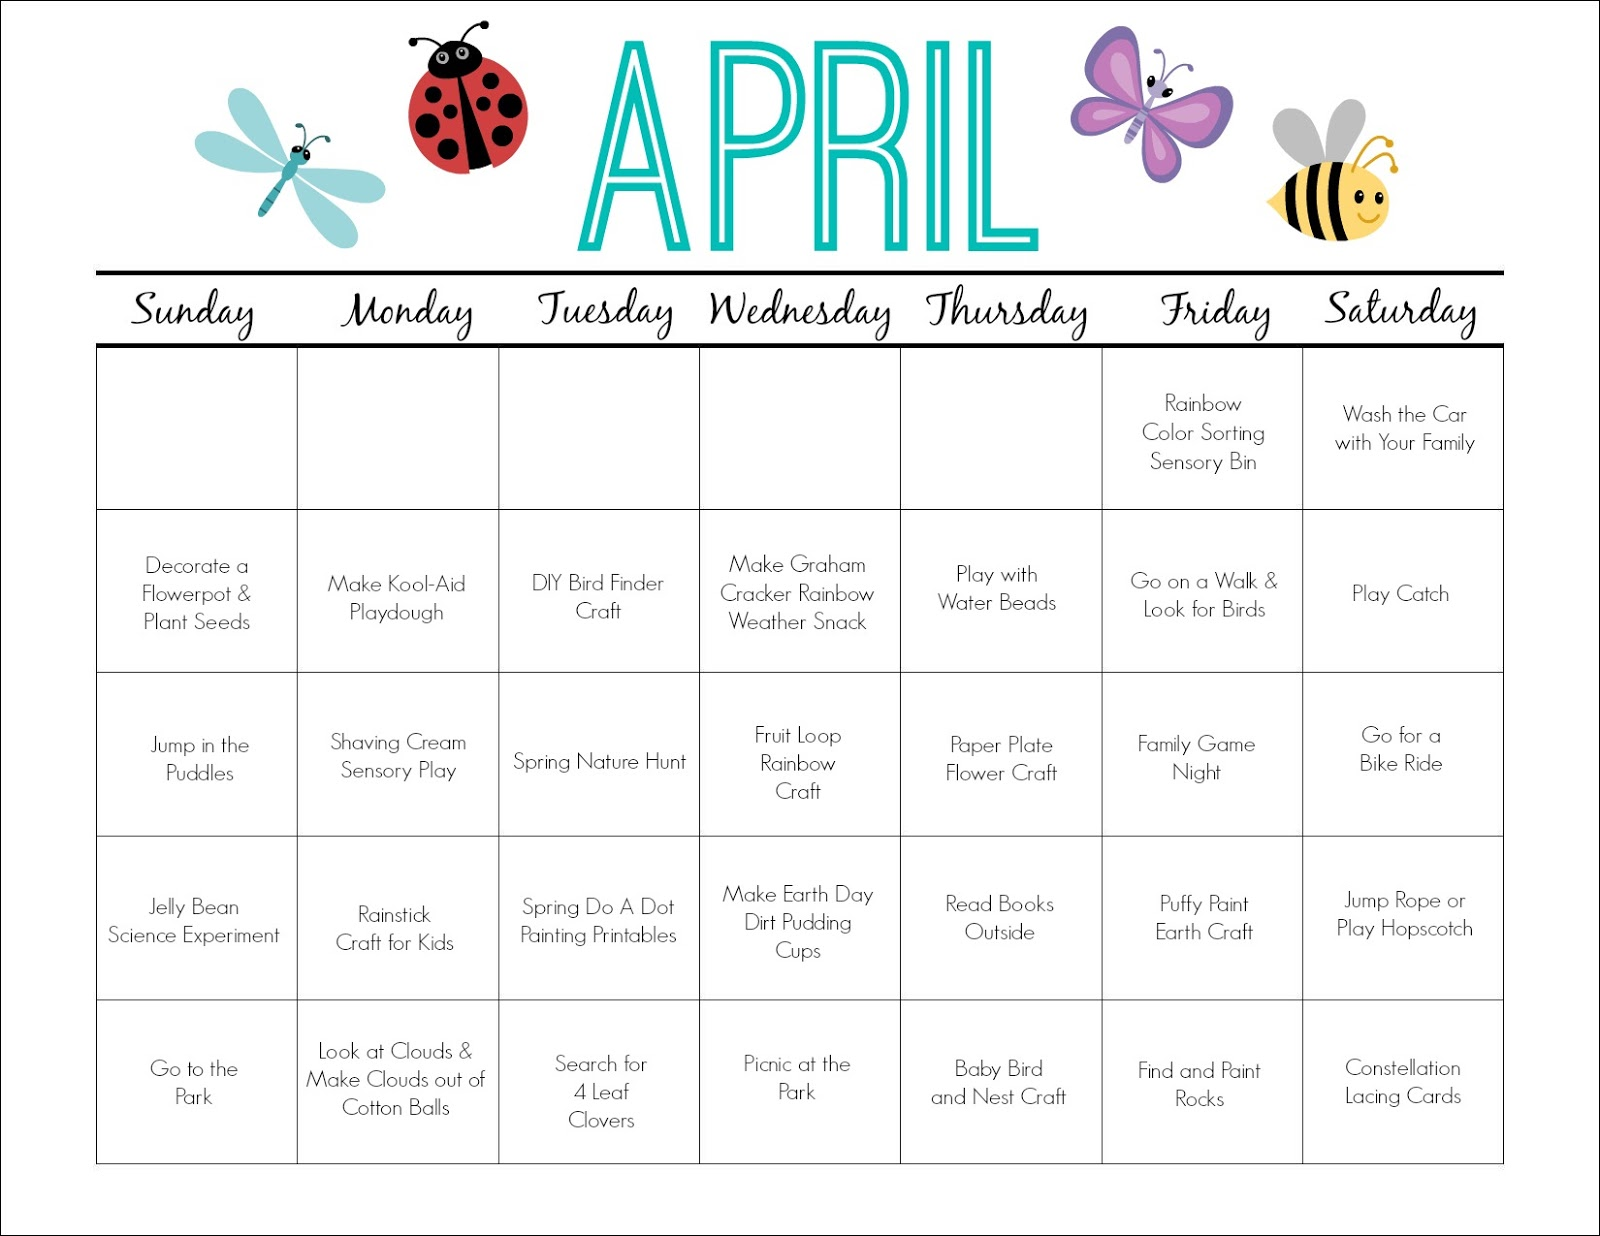 Calendar Activities Printables : Printable activity calendar for kids free from